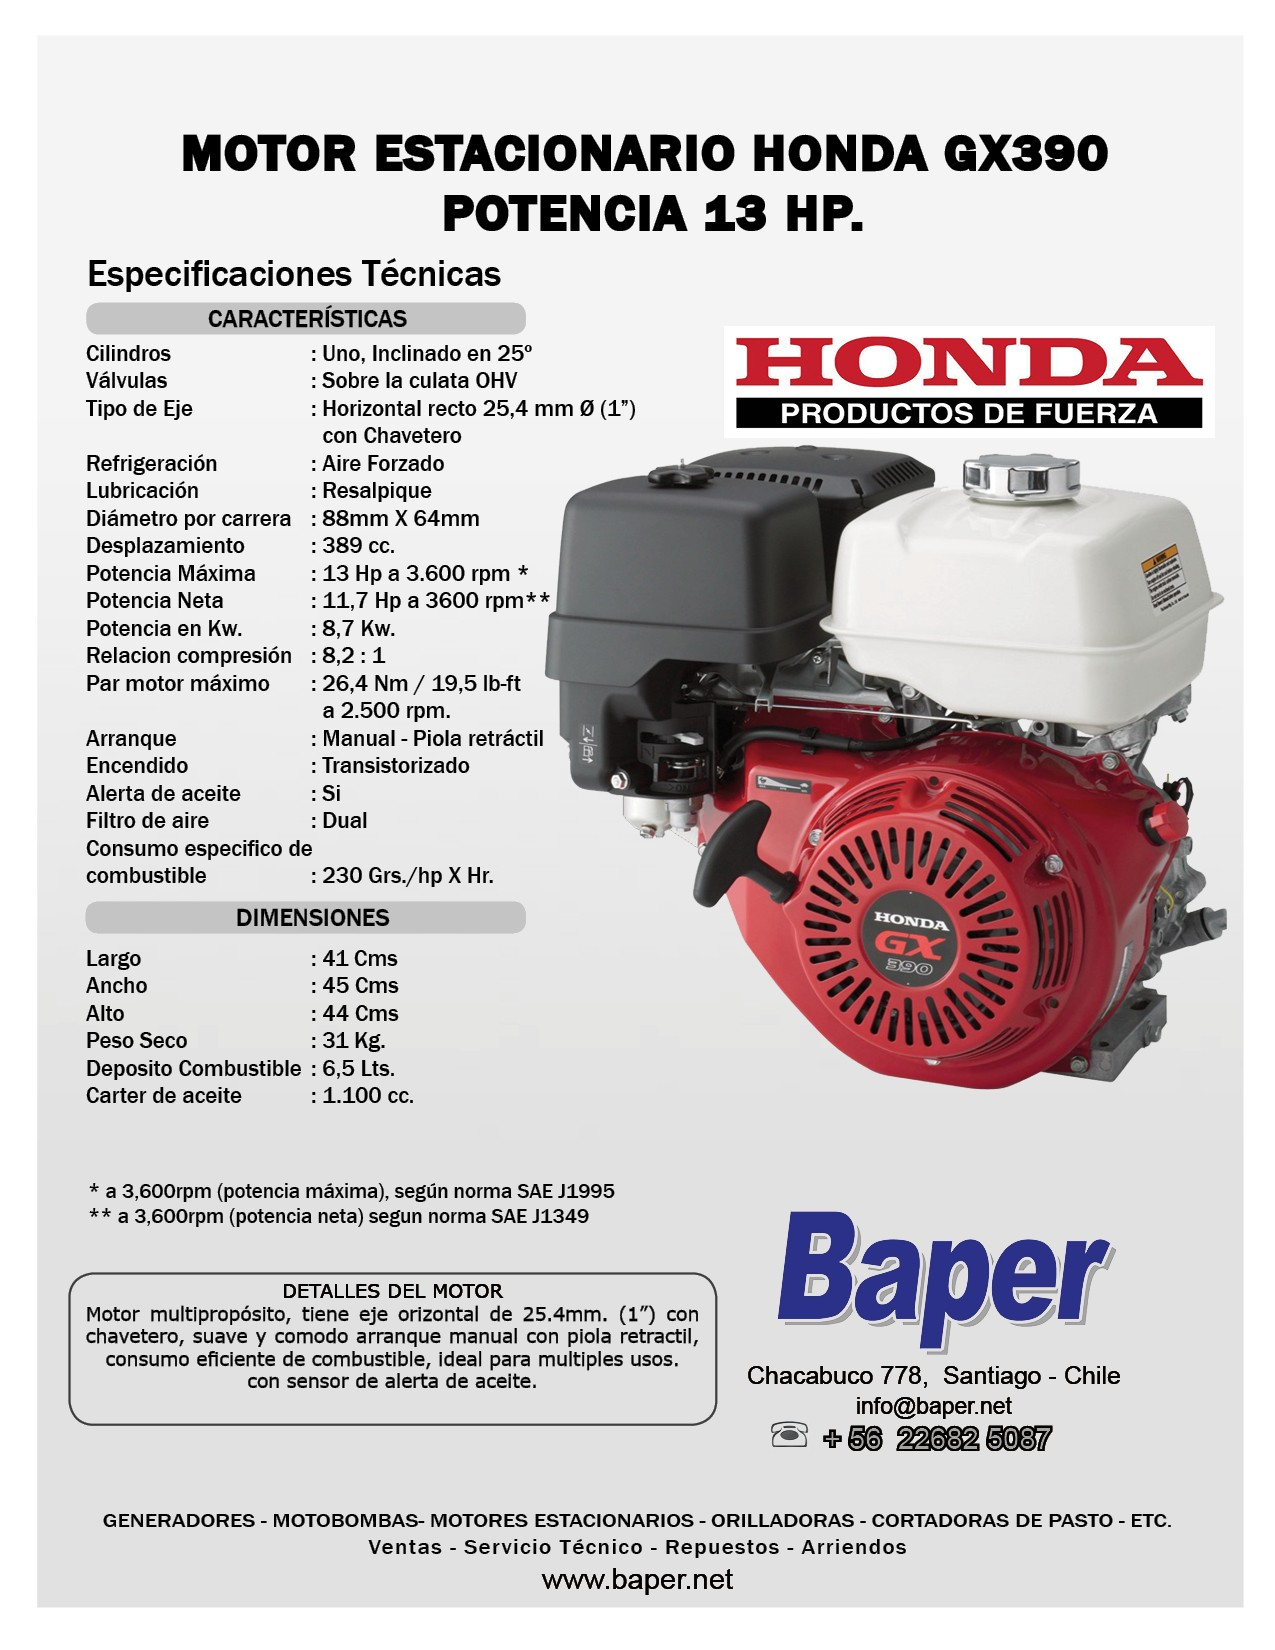 honda gx390 parts diagram motor estacionario honda bencinero gx390 13hp  arranque manual baper of honda gx390